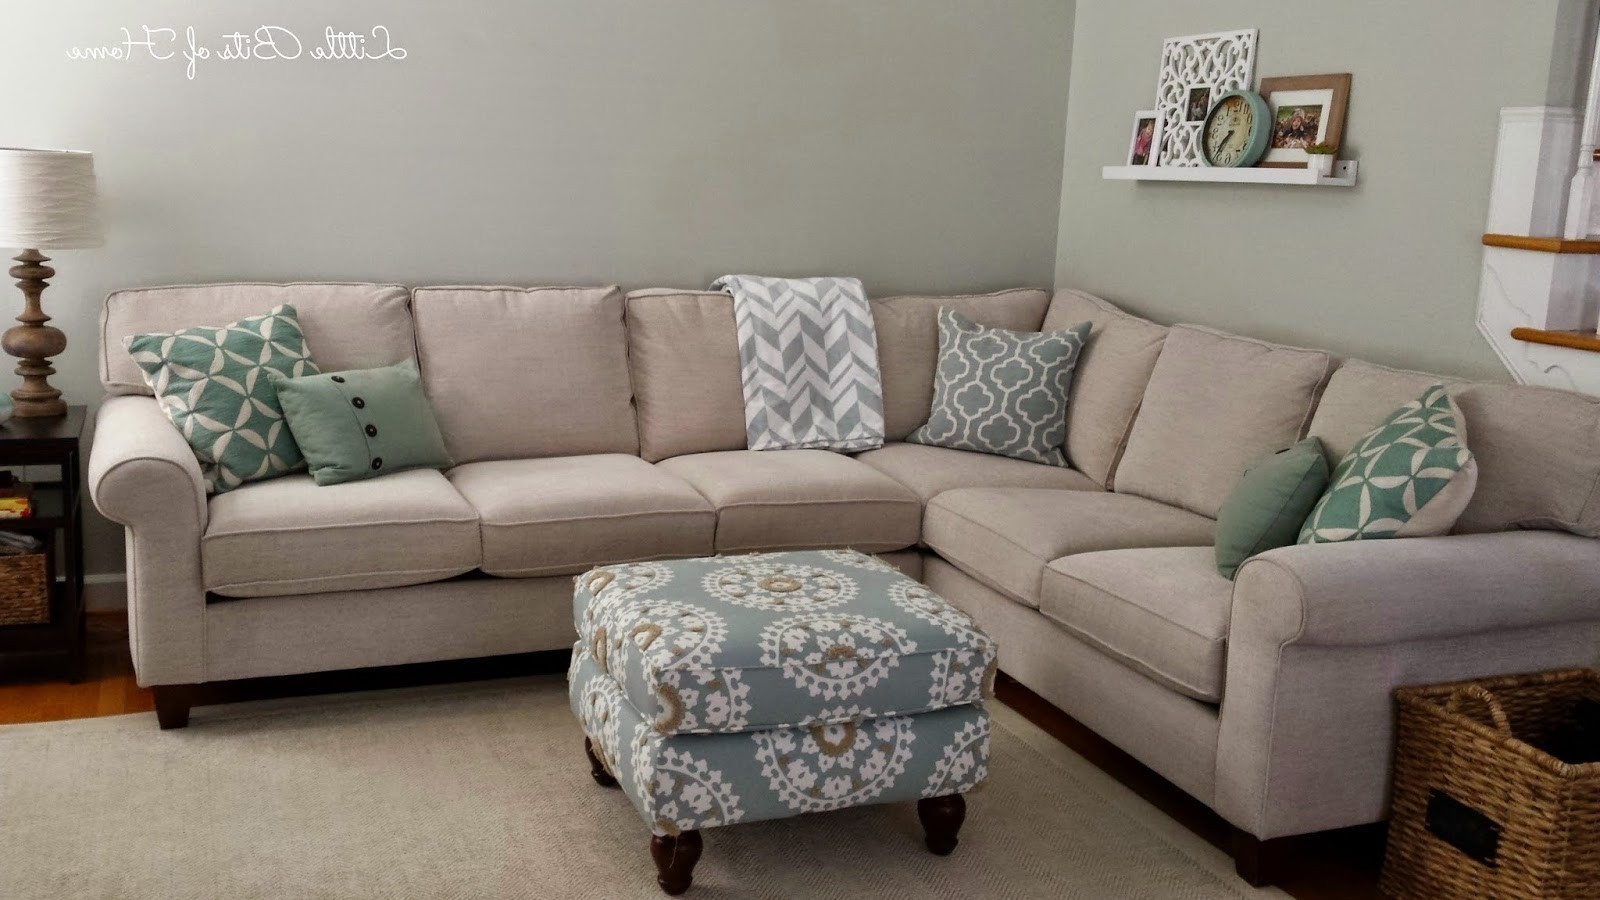 Widely Used Havertys Sectional Sofas Regarding Lovely Haverty Sectional Sofa – Buildsimplehome (View 3 of 20)